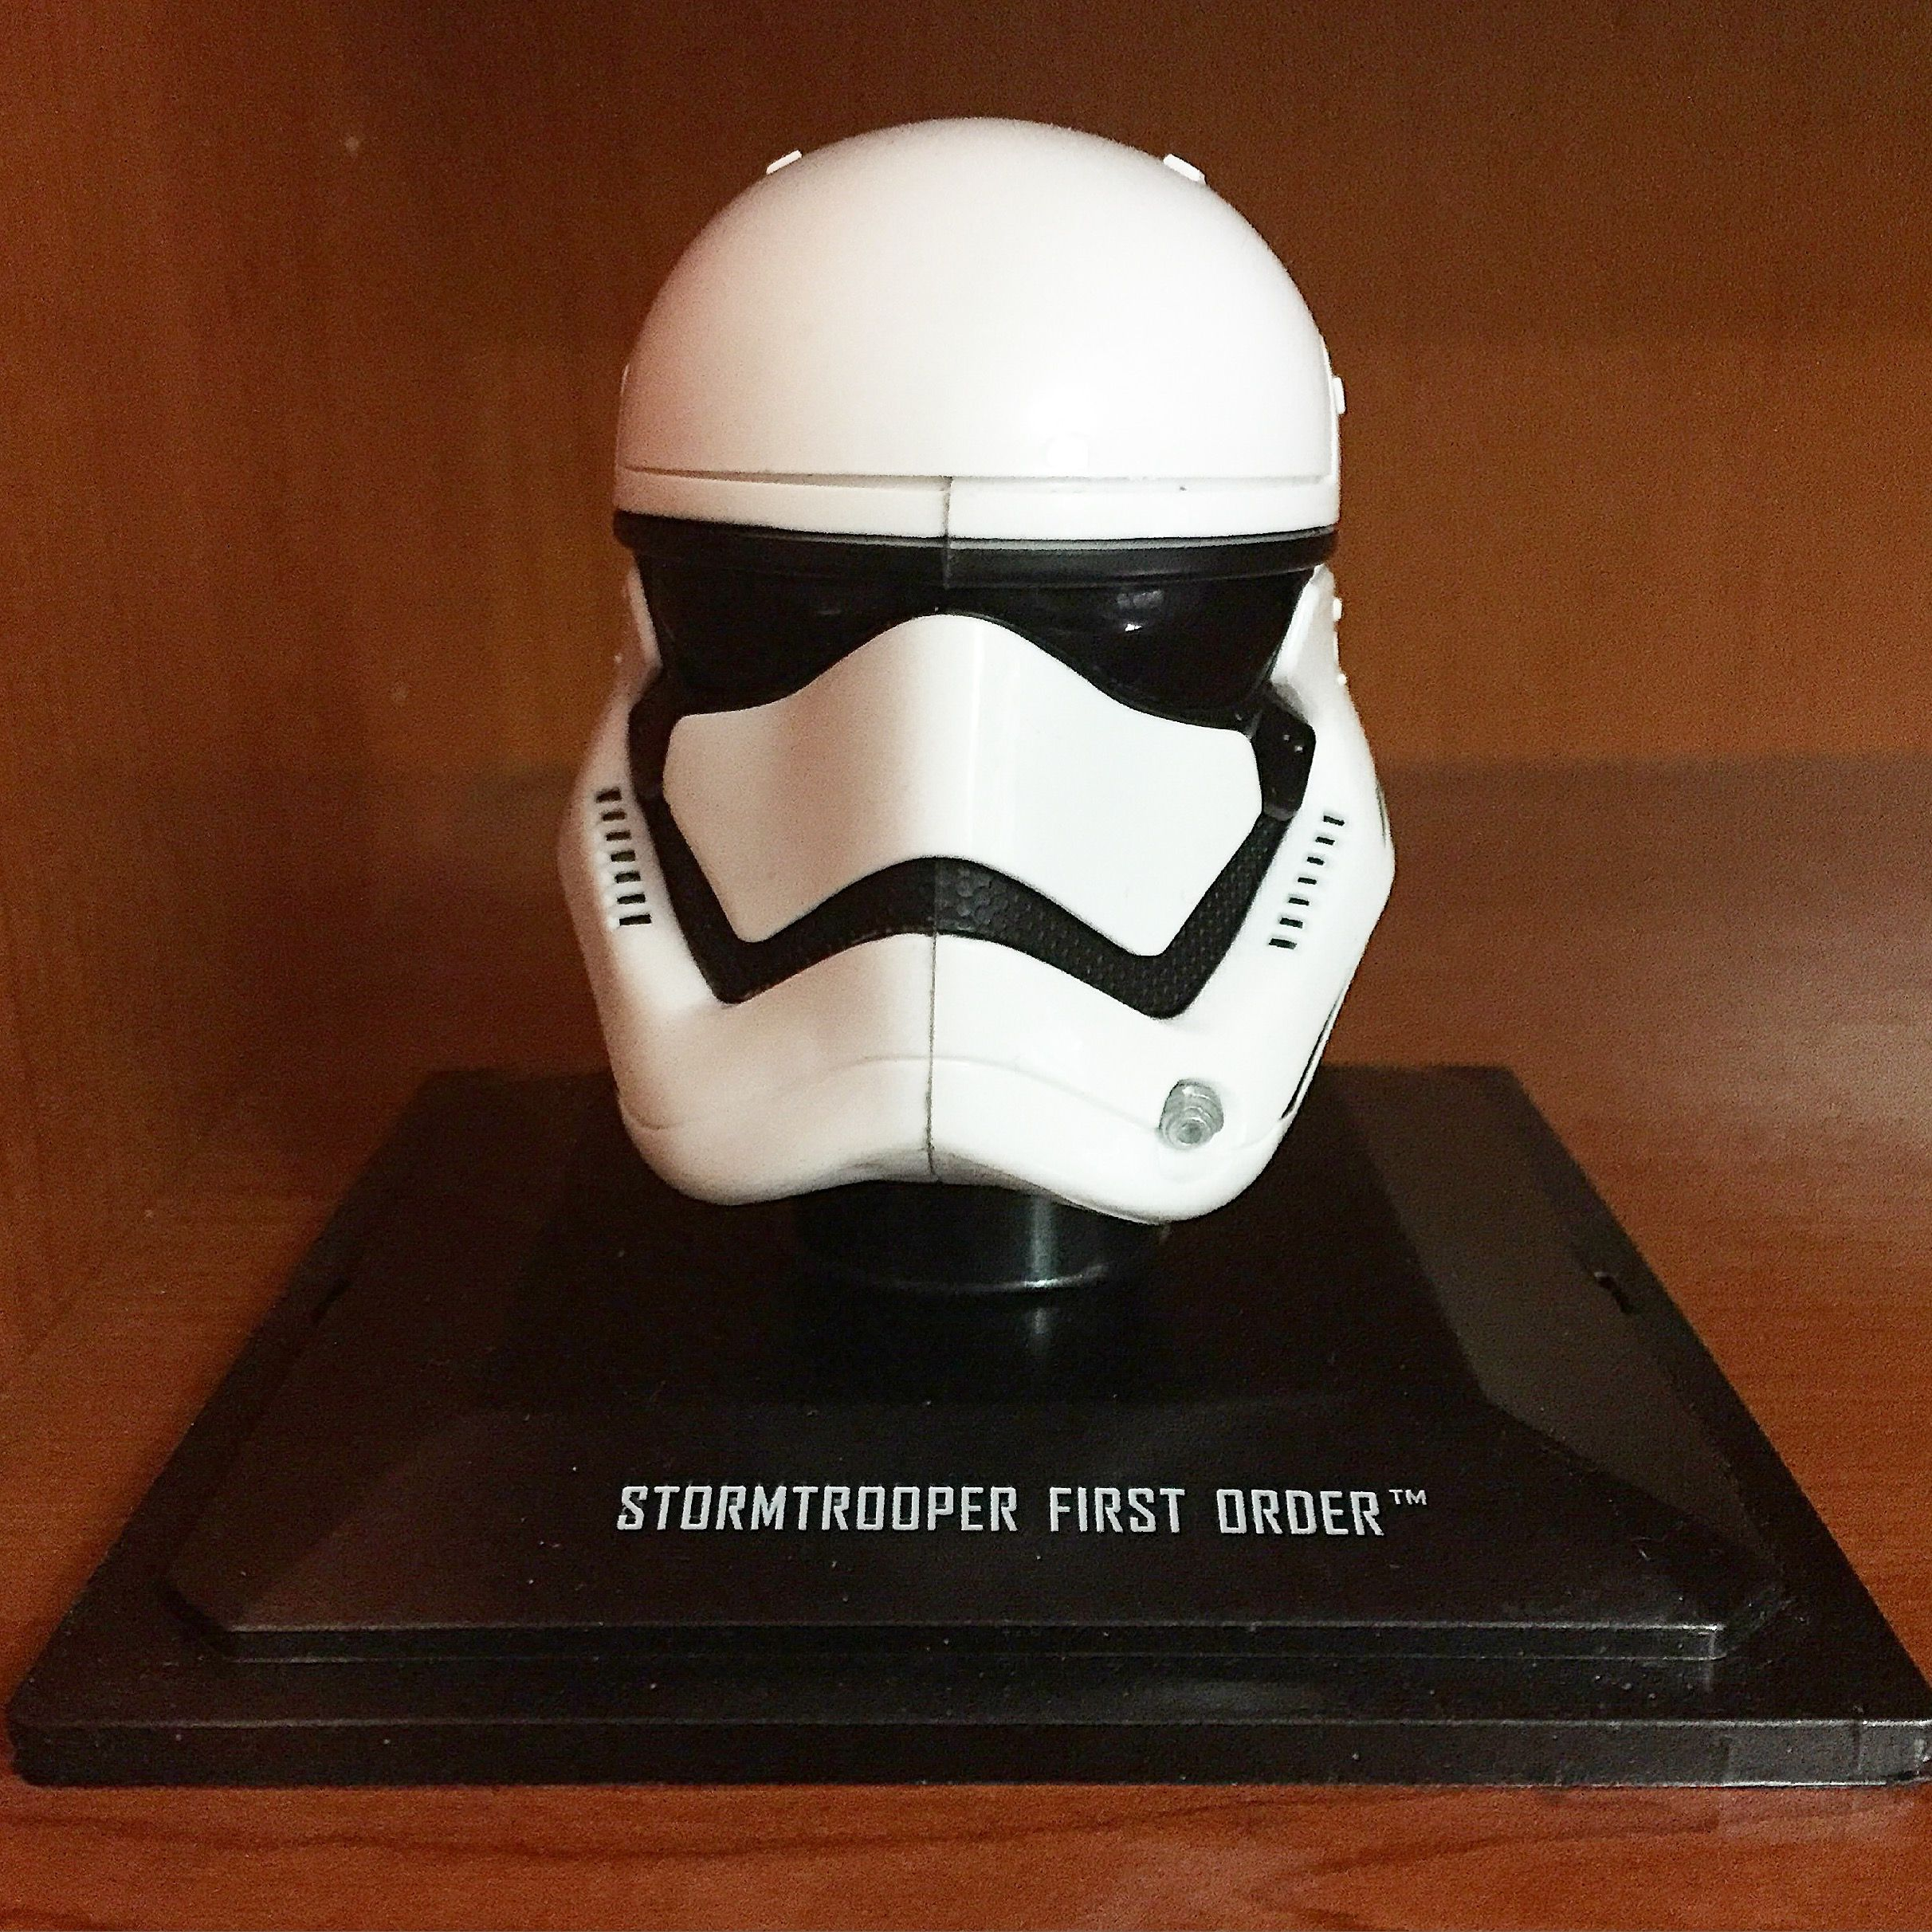 40. Stormtrooper First Order